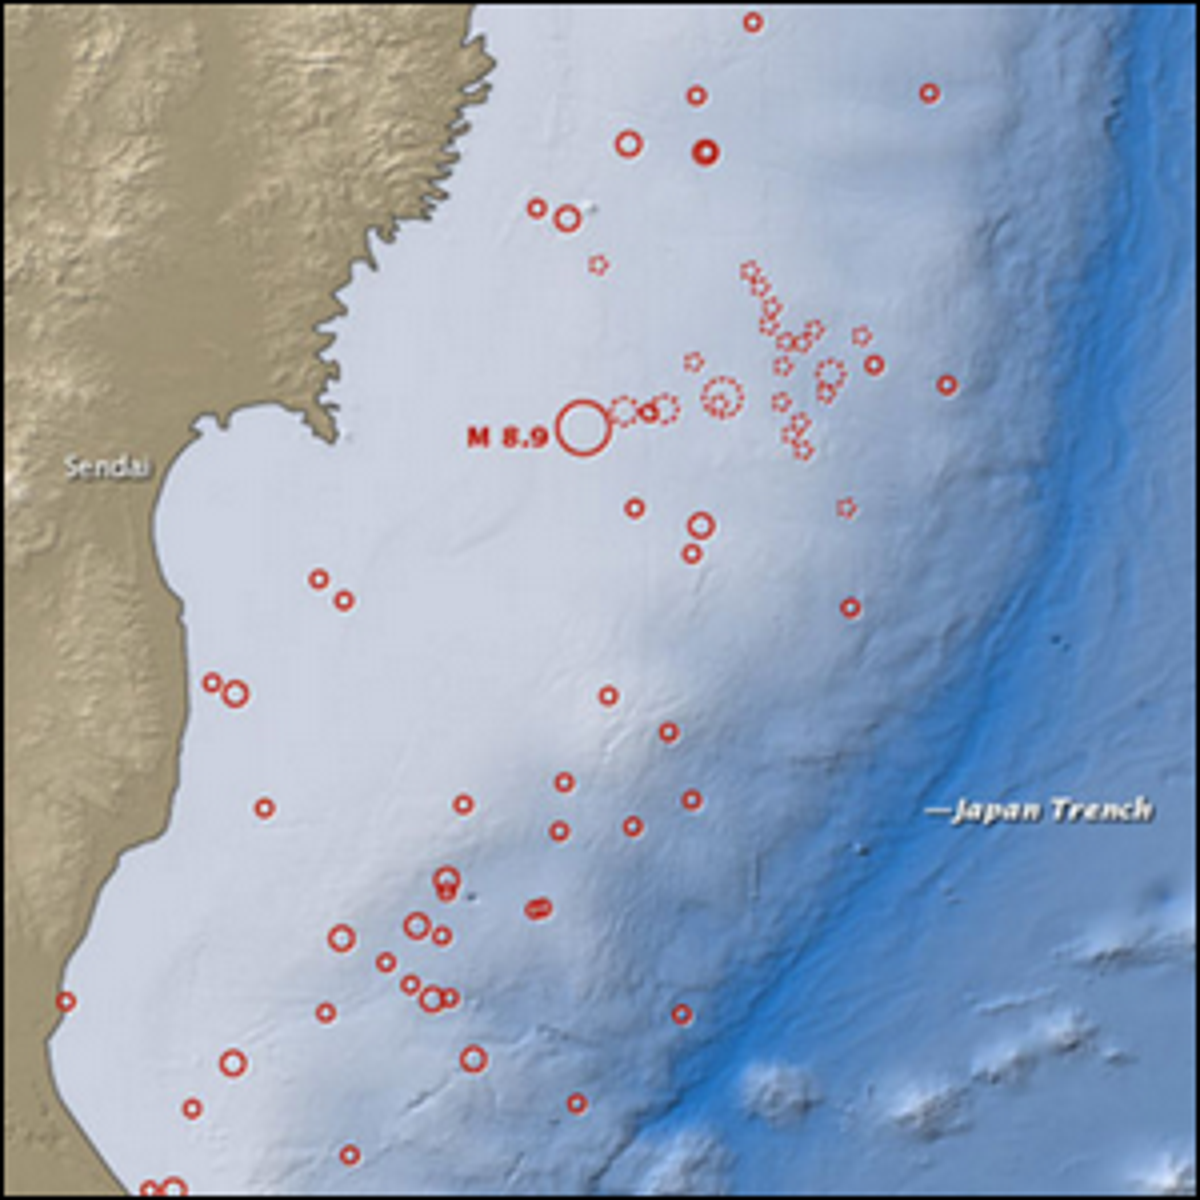 A map showing the location of the March 11, 2011 earthquake in Japan, as well as the foreshocks.